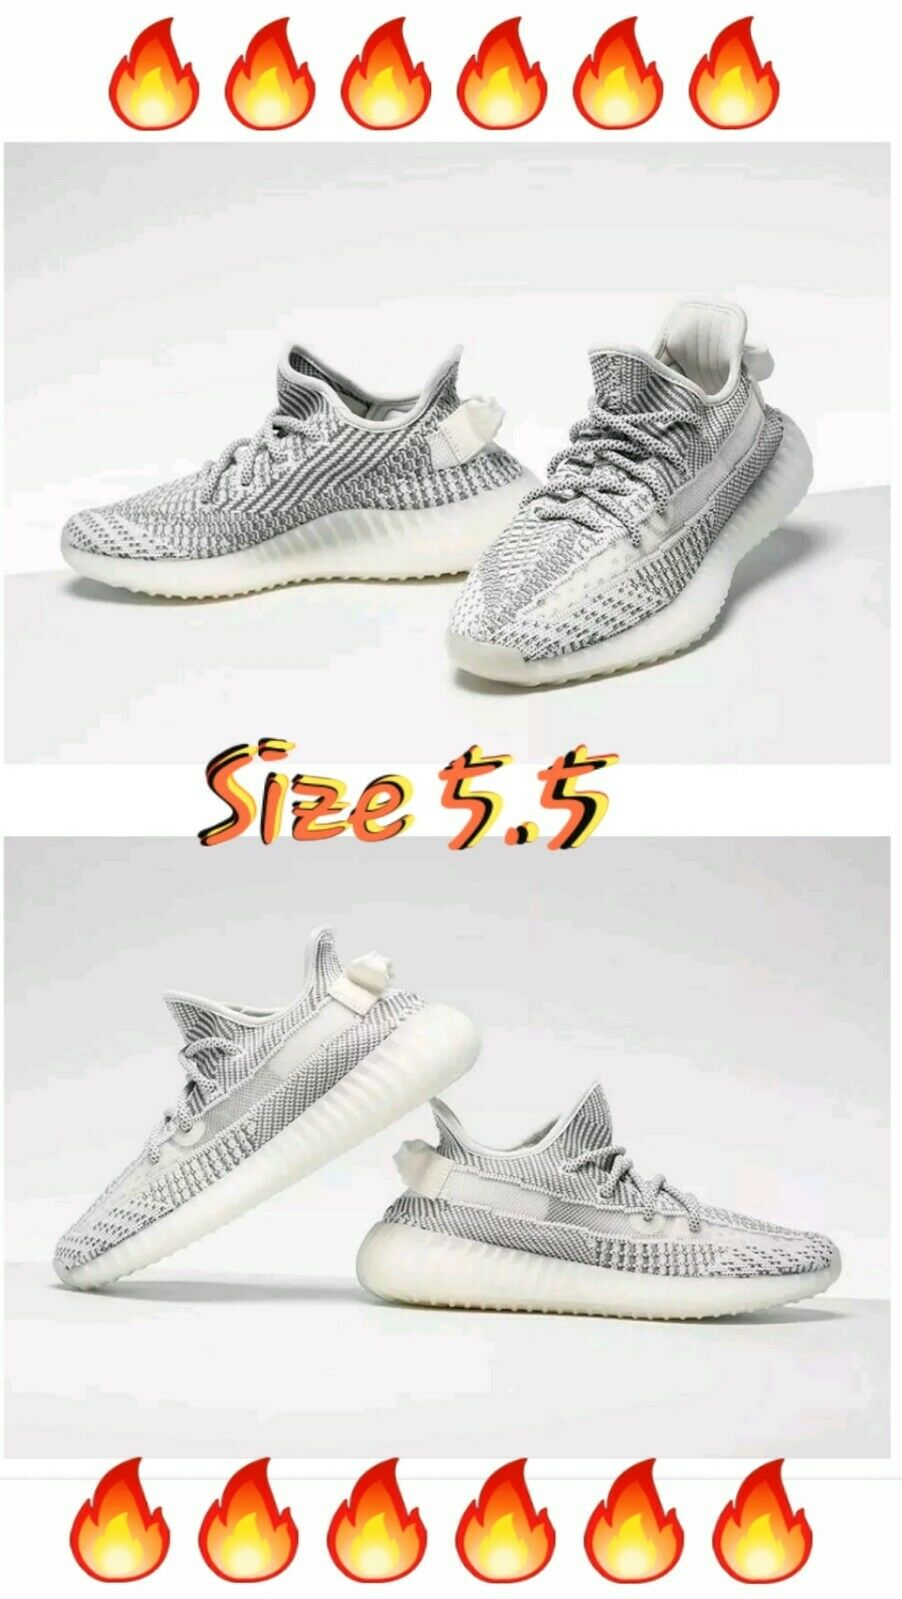 NEW Adidas Yeezy Boost 350 V2 STATIC EF2905 100% AUTHENTIC GUARANTEED Size 5.5